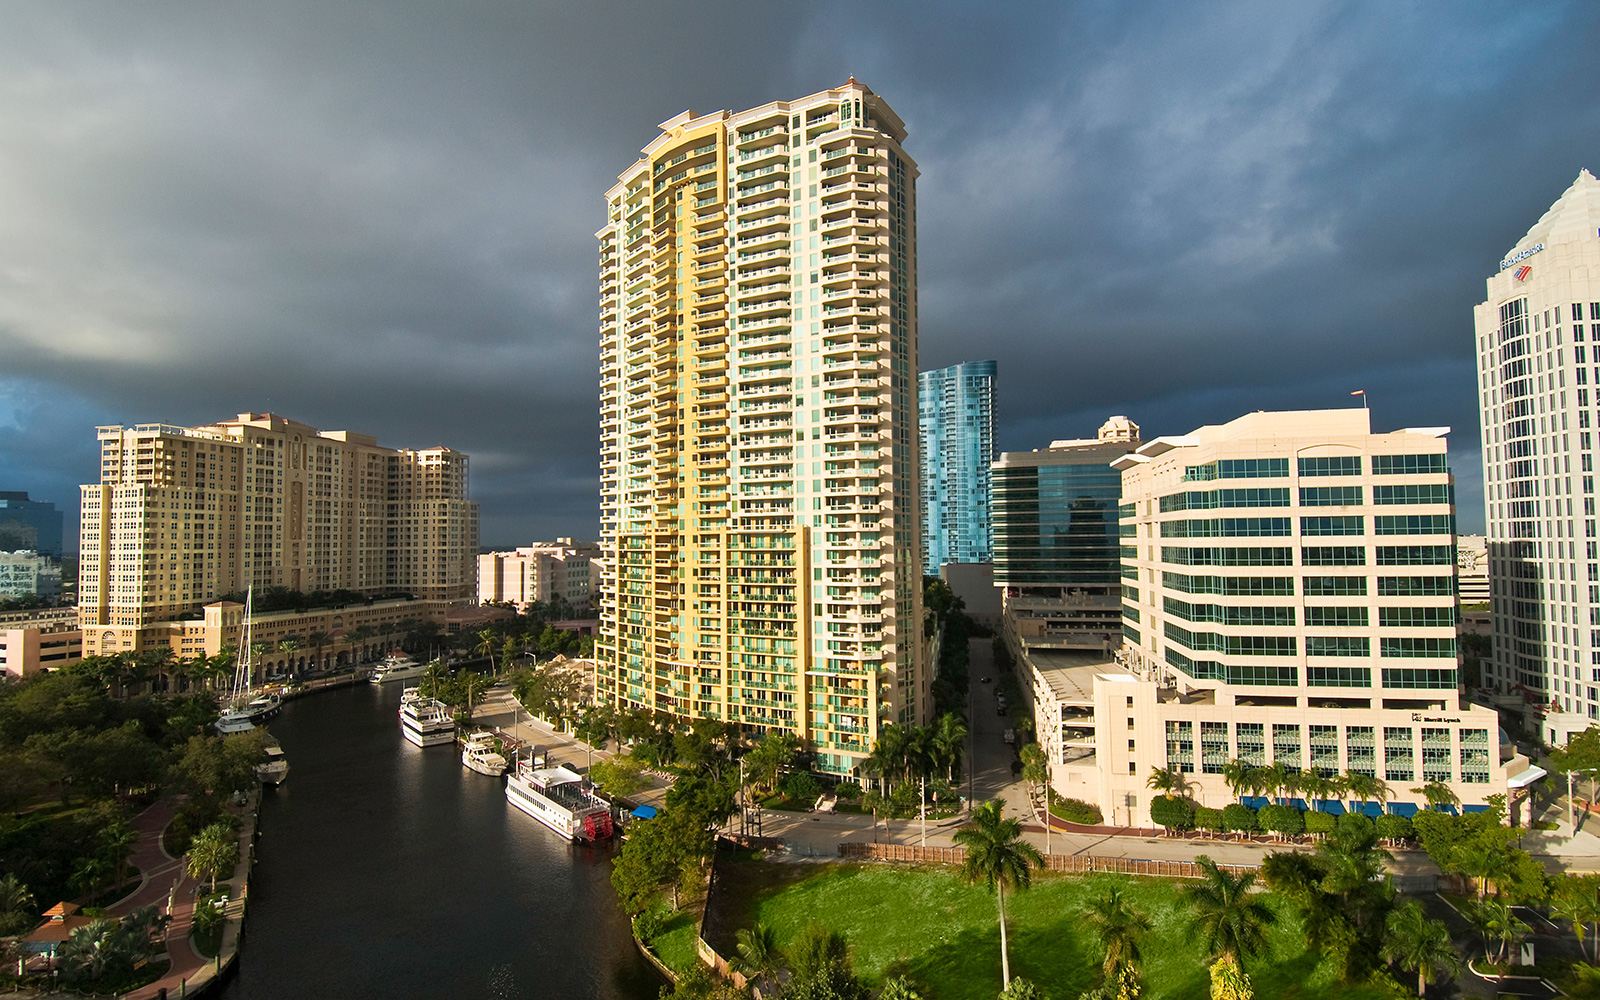 19. Fort Lauderdale, Florida